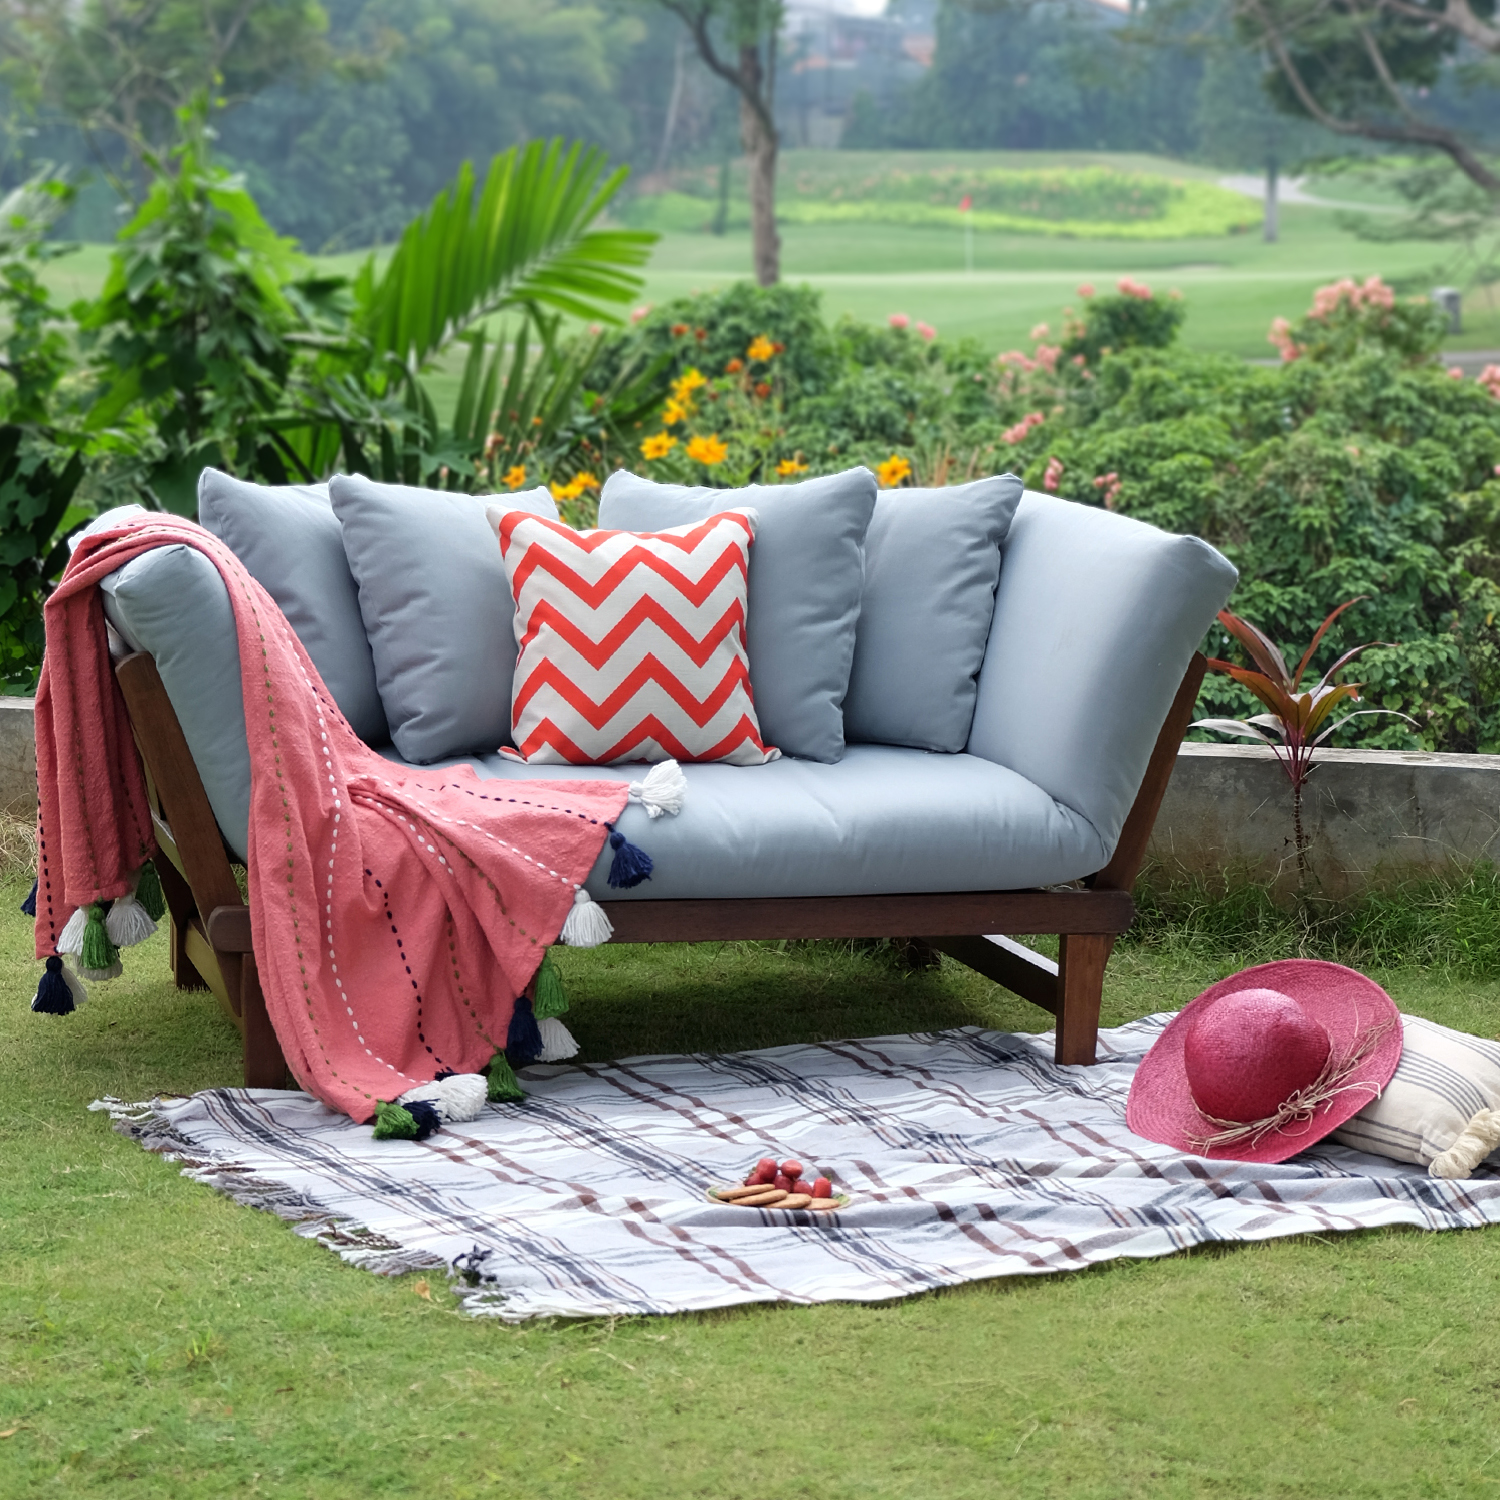 Westlake Outdoor Convertible Sofa Daybed, Natural Brown ...